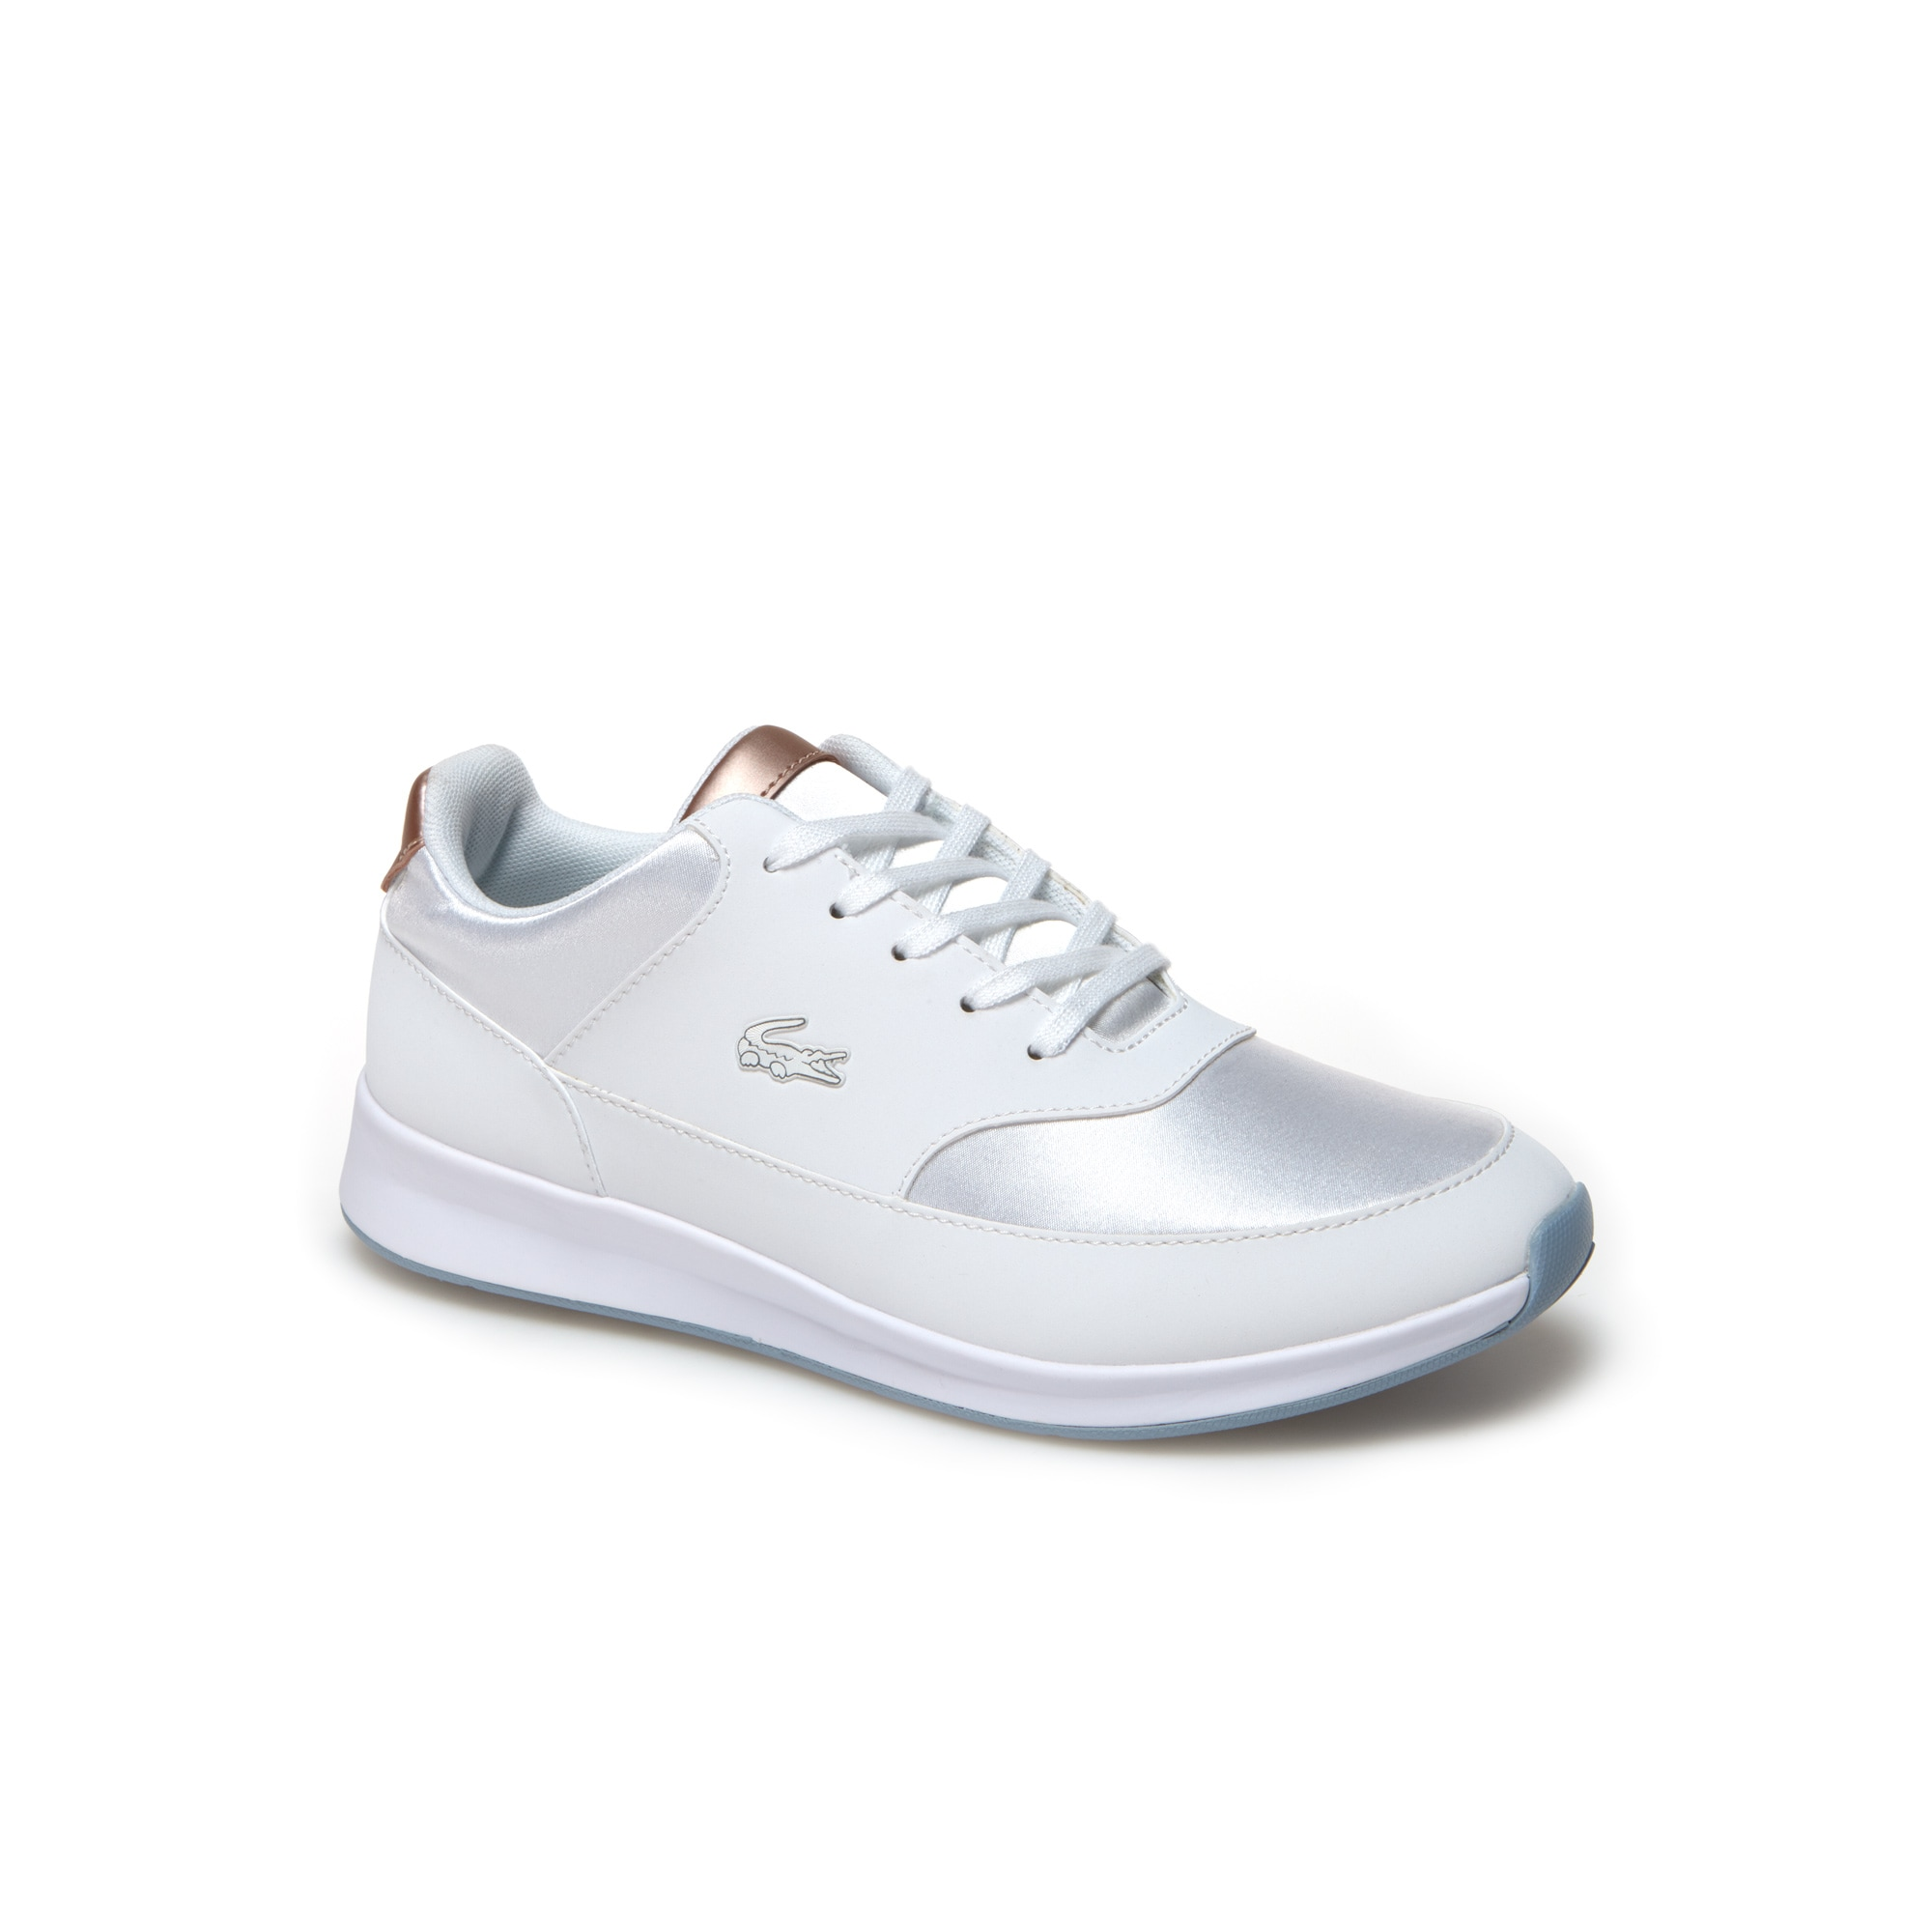 Women's Chaumont Lace Textile Sneakers